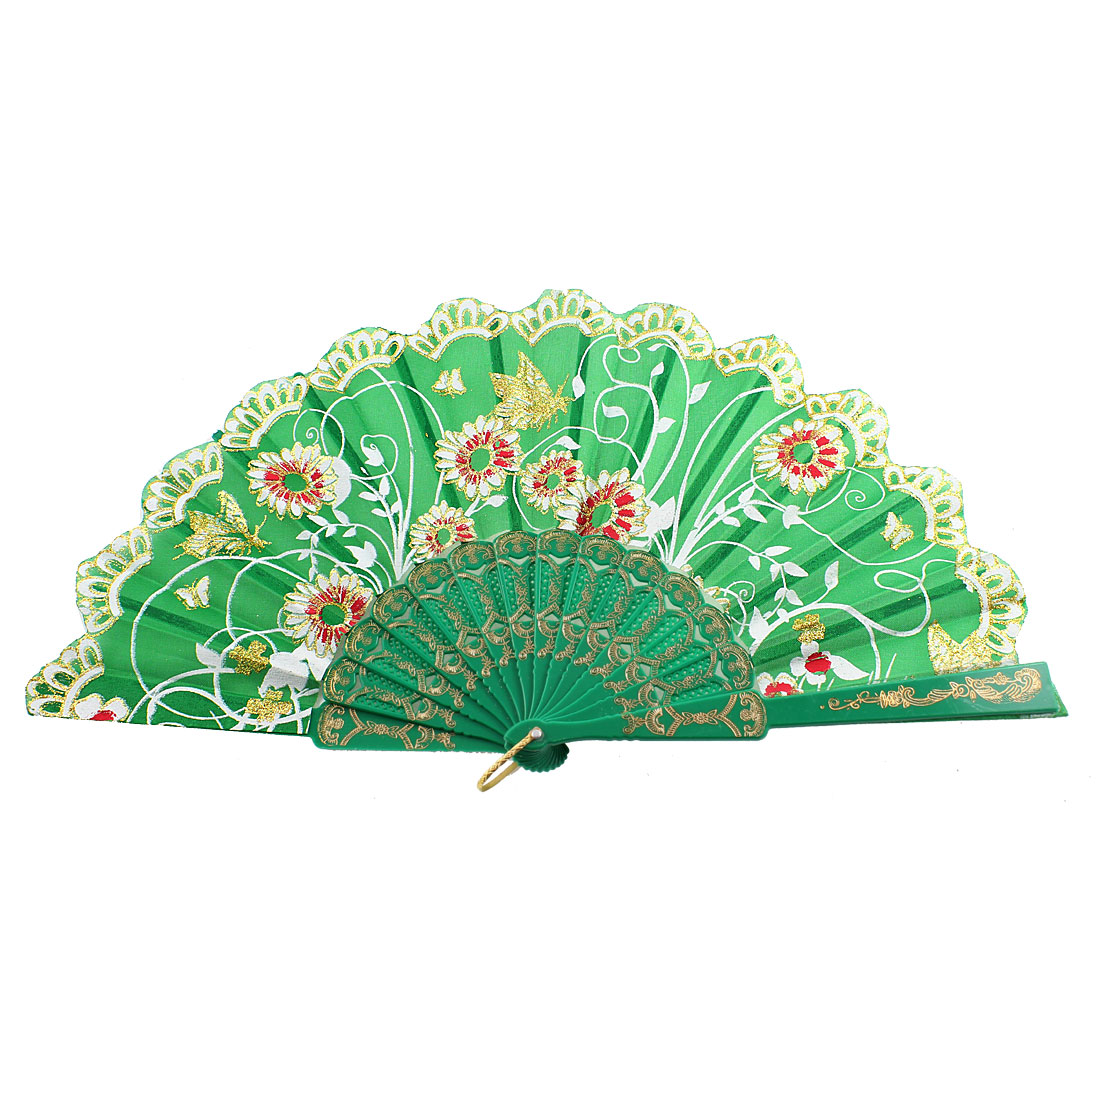 Hollow Out Frame Glittery Powder Accent Butterfly Print Handheld Hand Fan Green